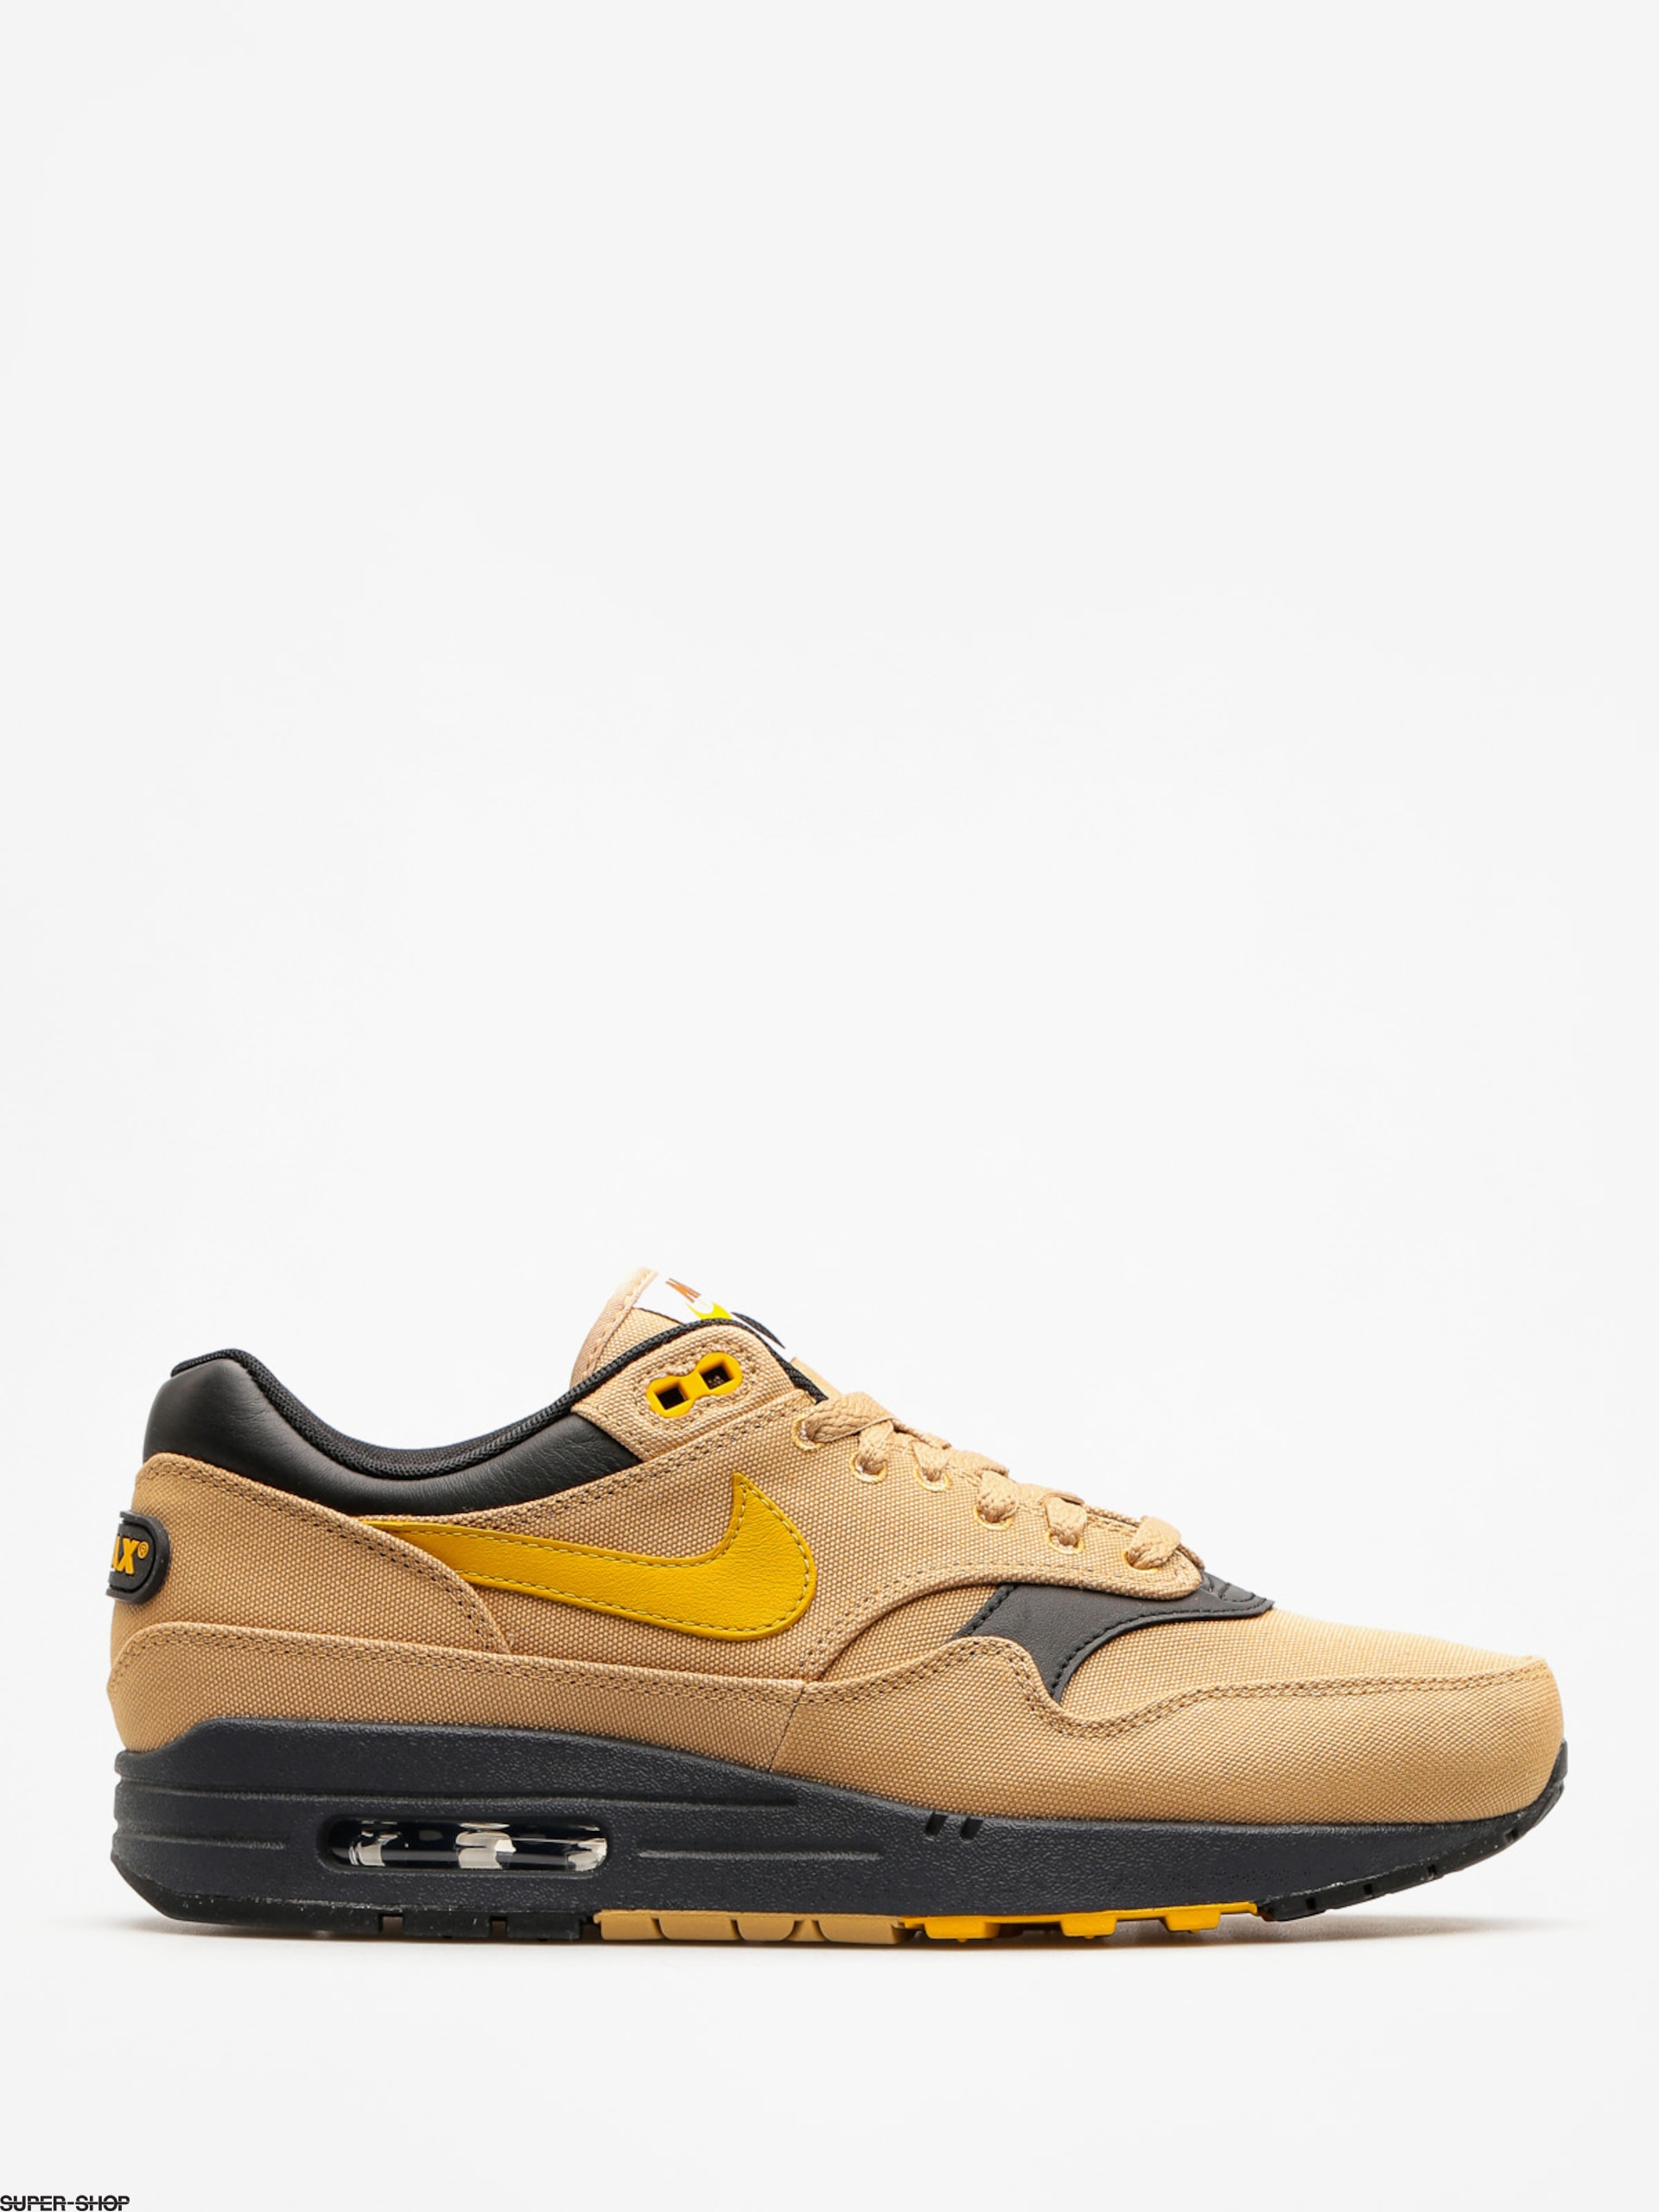 "Nike Schuhe Air Max 1 Premium (elemental gold/mineral yellow black ""93 logo pack"" )"